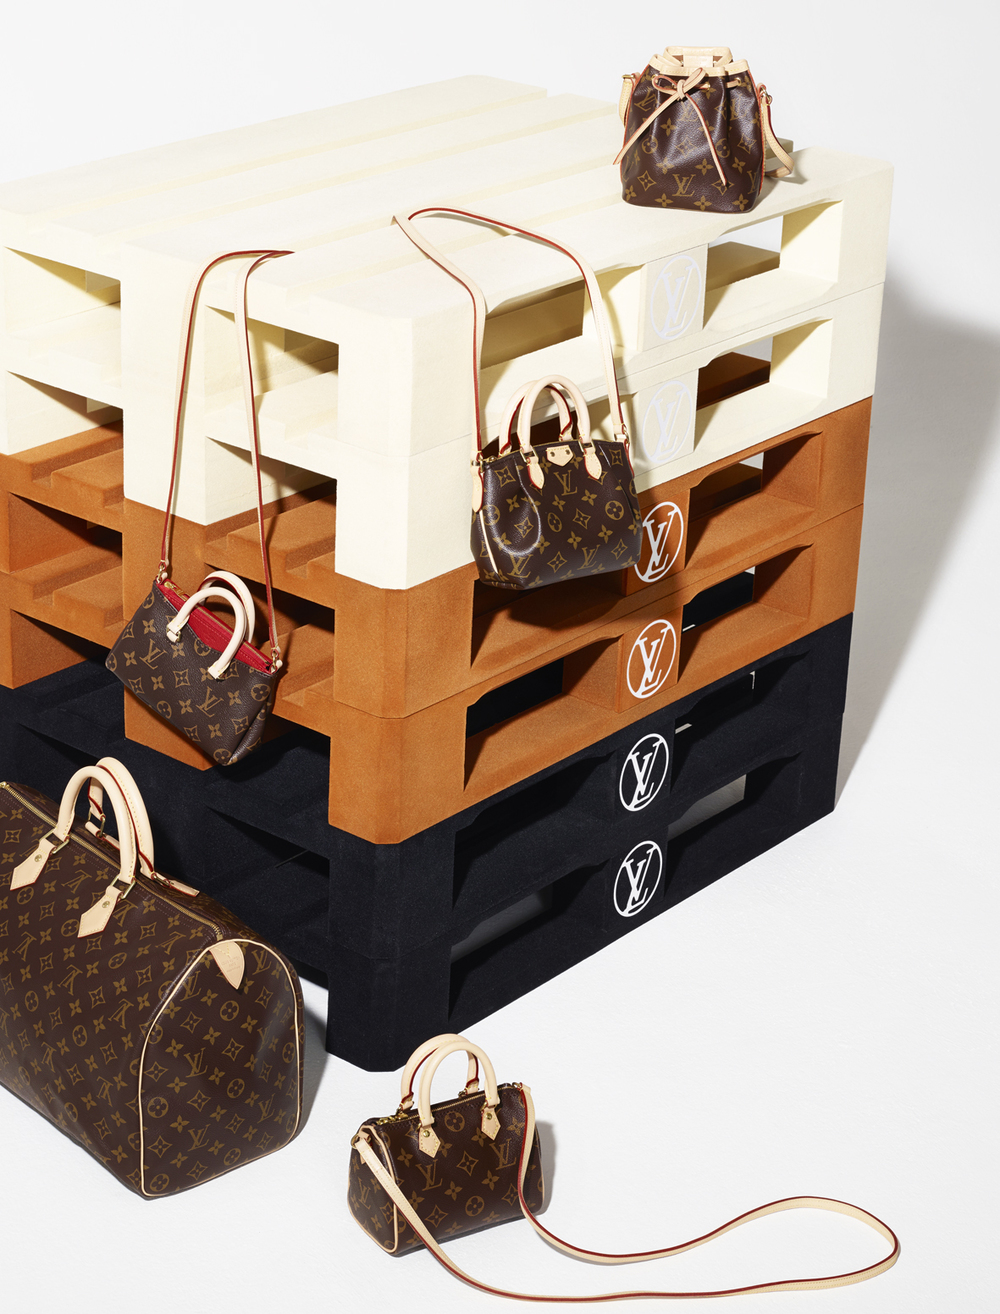 LouisVuitton_05_137.jpg